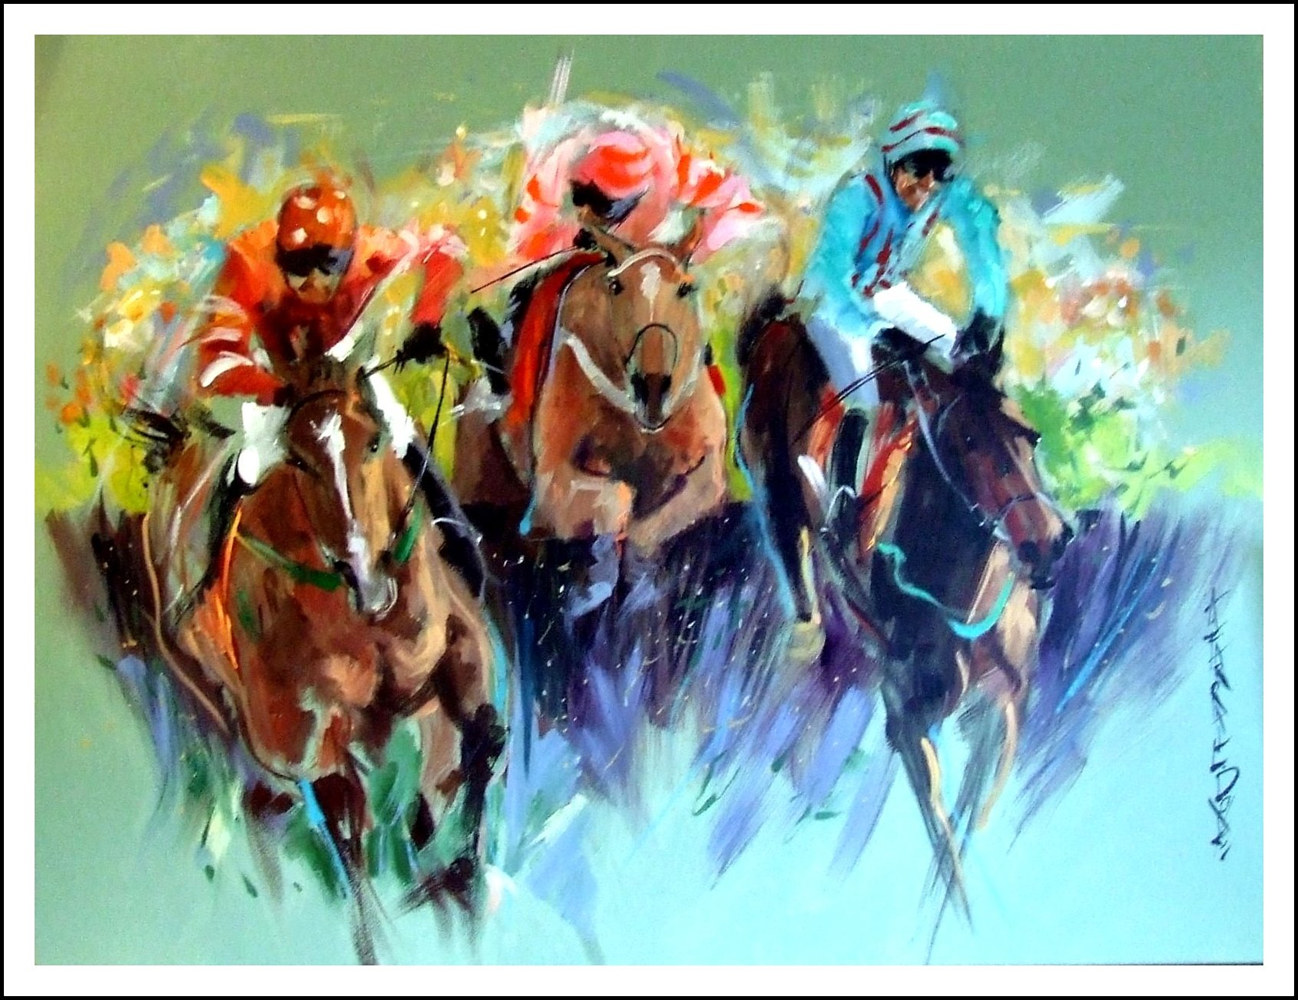 Acrylic painting 1 Birchmasters(Flying High)- by Anne Farrall Doyle